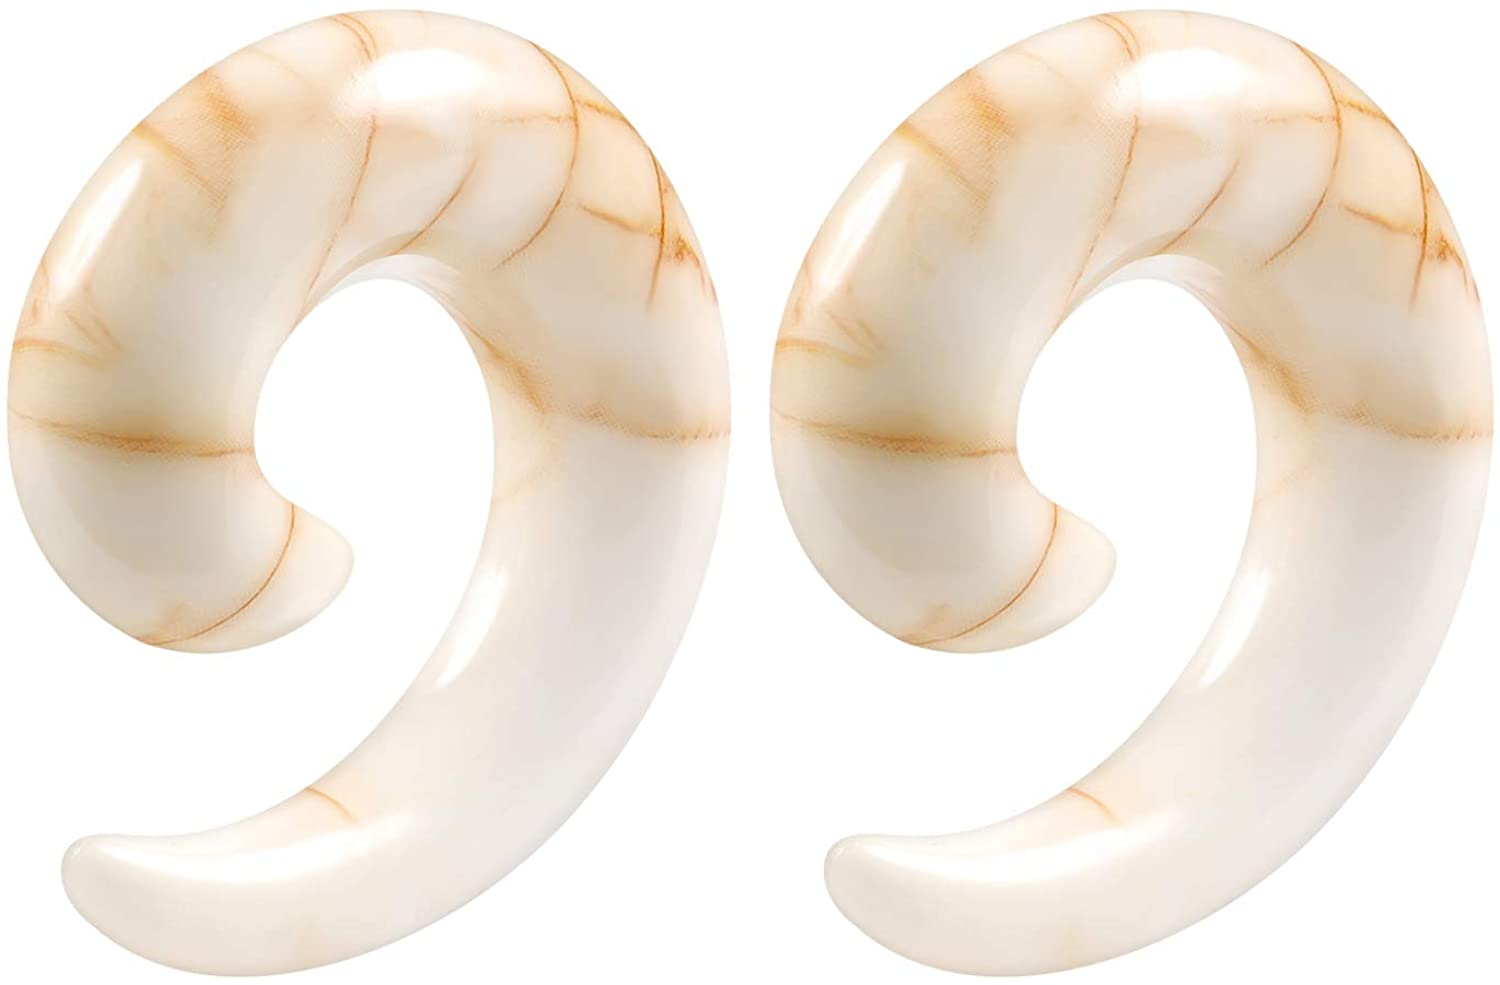 BIG GAUGES Pair of Acrylic Taper Spiral Piercing Jewelry Ear Plug Stretching Expander Taper Earring